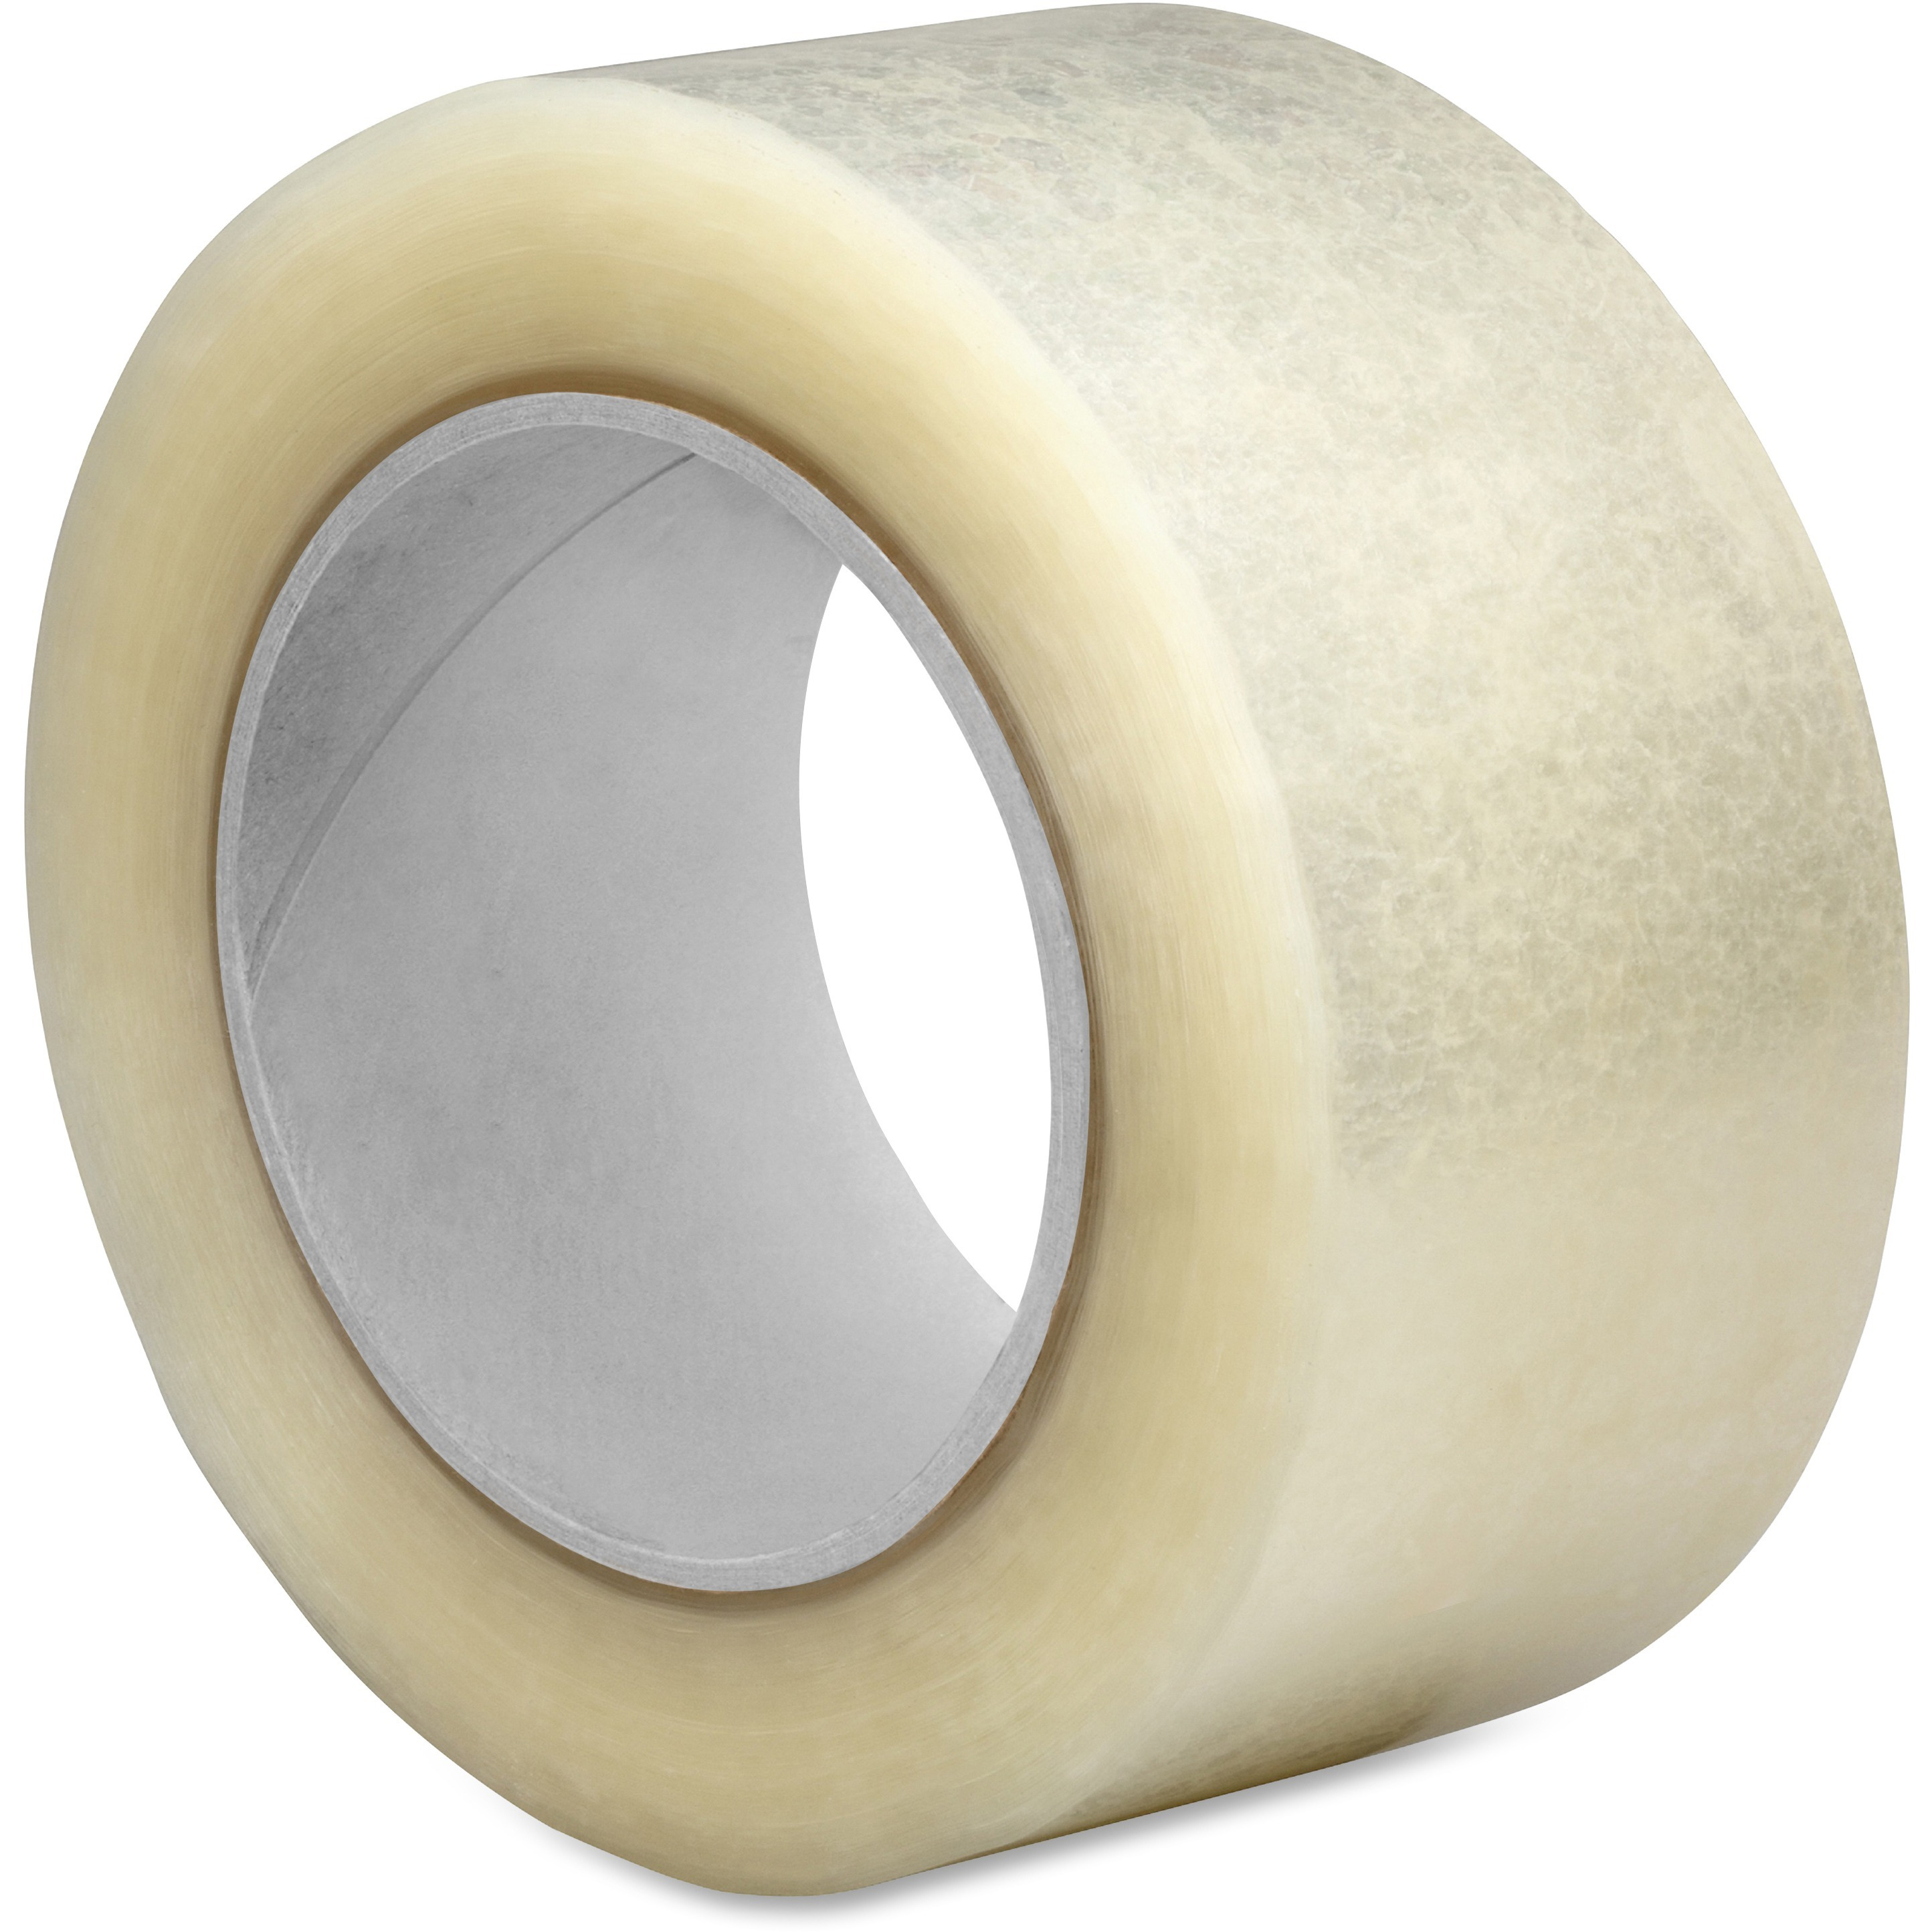 Sparco, SPR74954, 2.5mil Hot-melt Sealing Tape, 24 / Carton, Clear